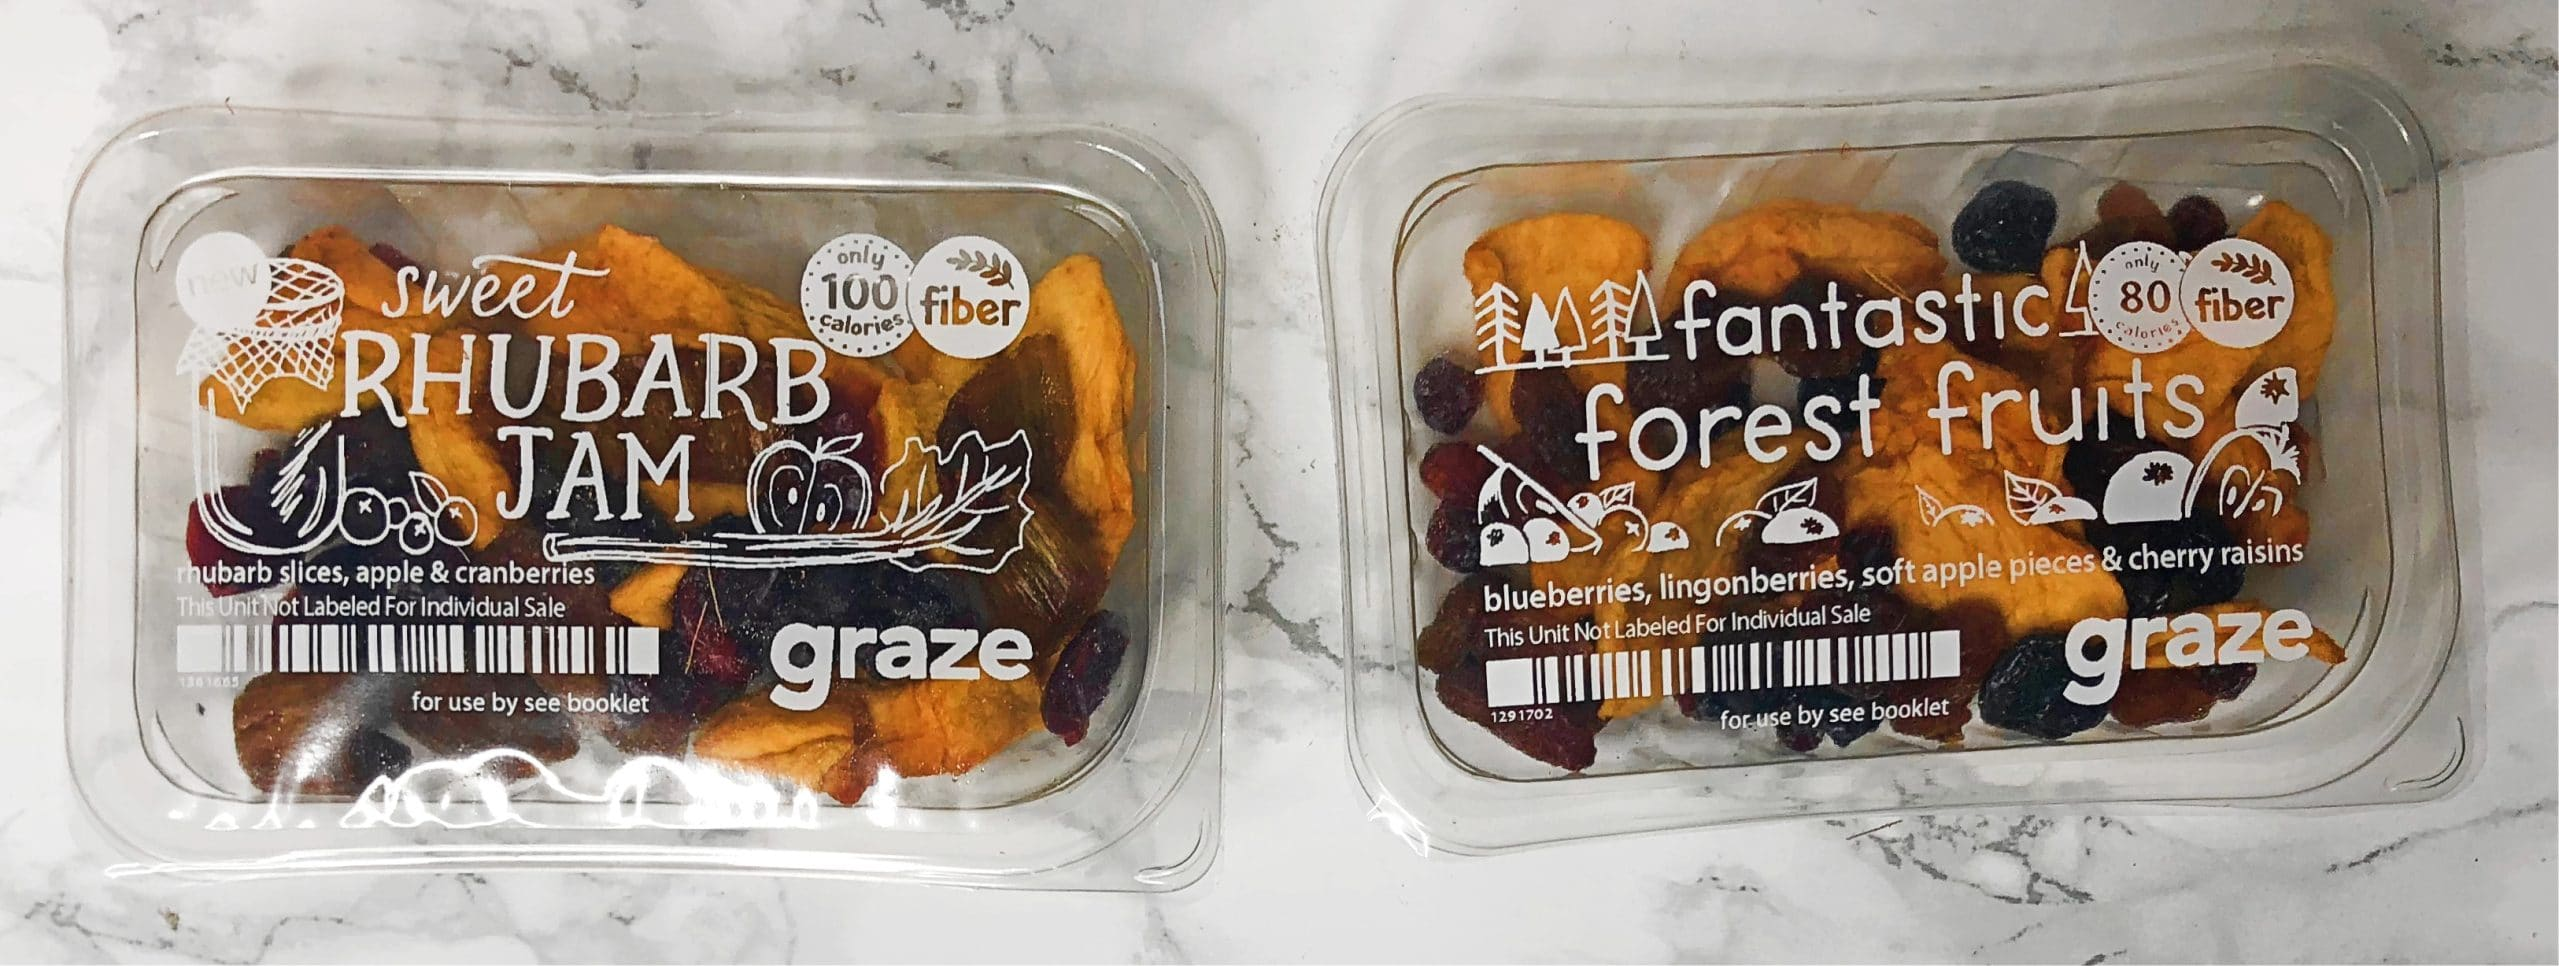 Graze Review - Sweet Rhubarb Jam and Fantastic Forest Fruits Review